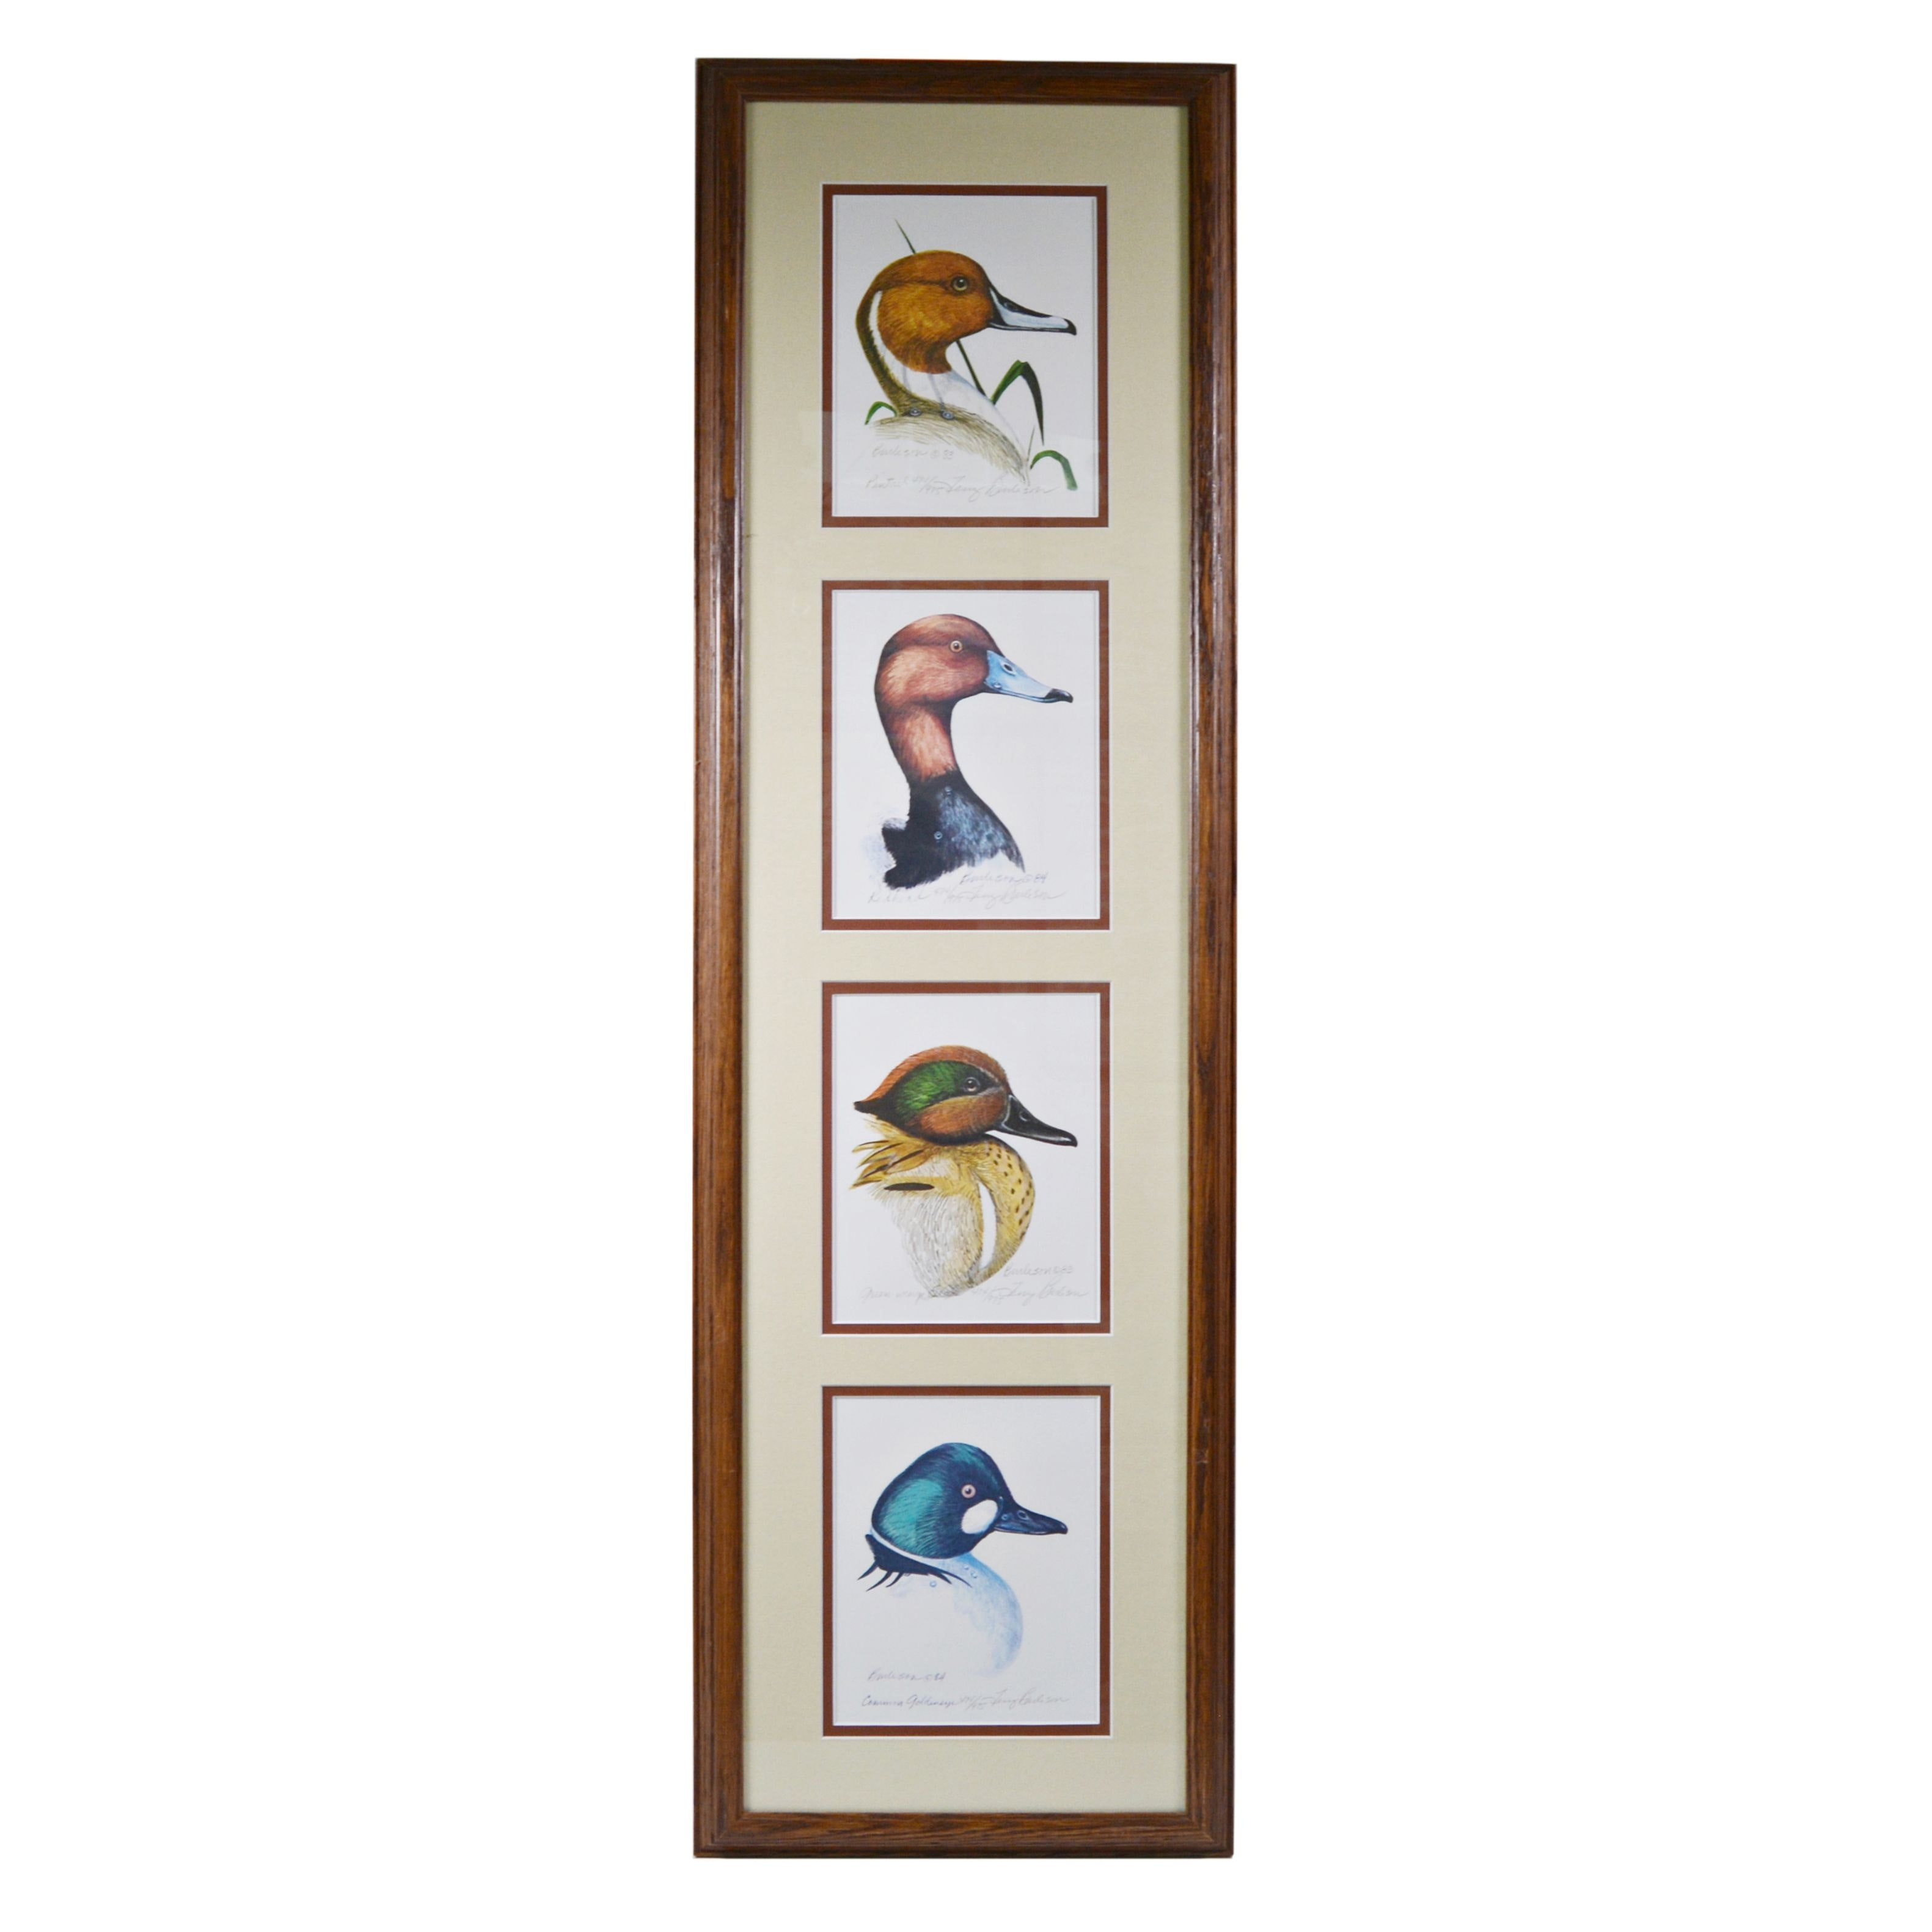 Terry Burleson Offset Lithographs of Four Ducks